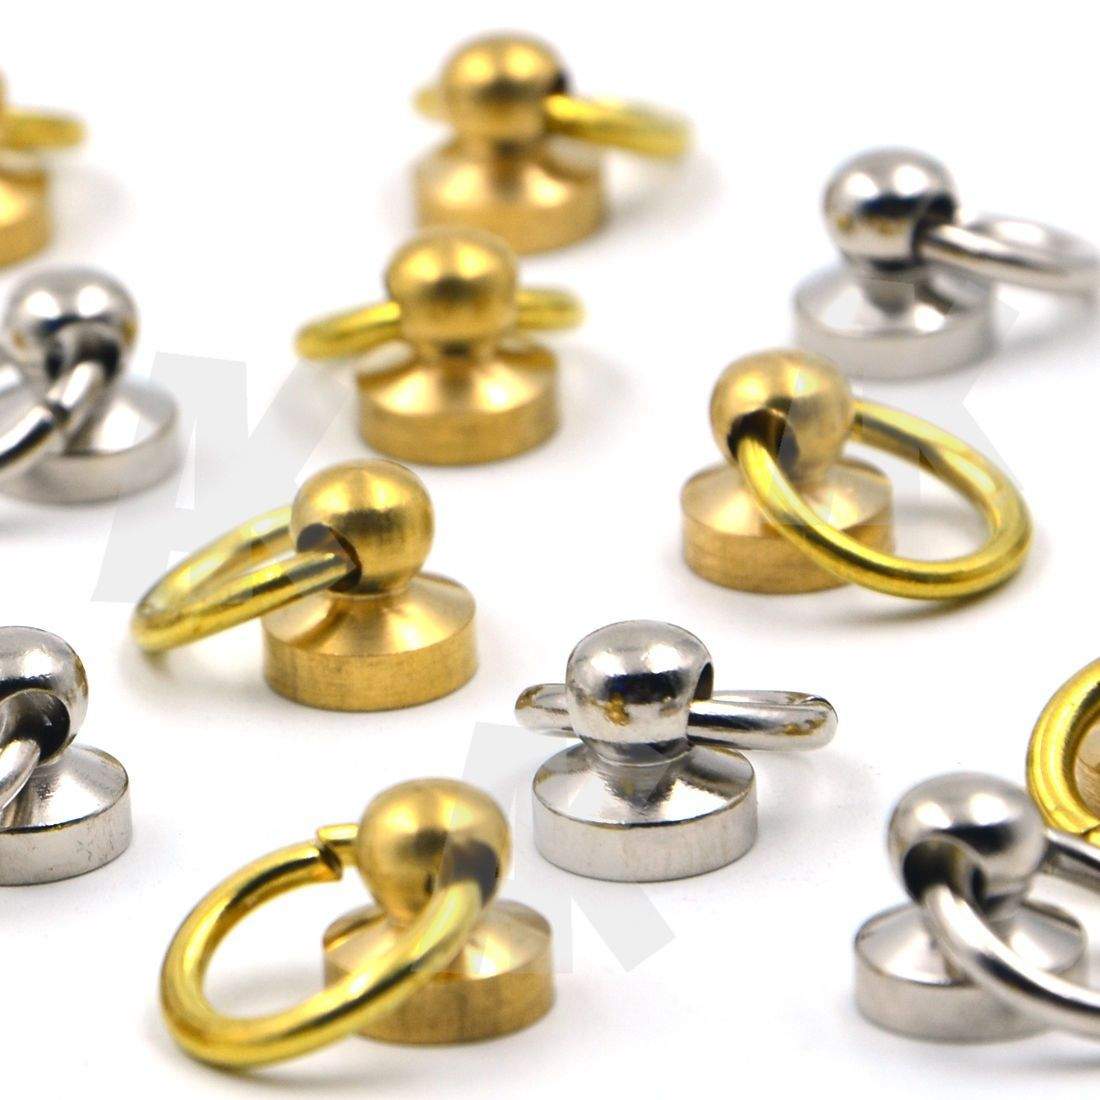 Brass Round Head Rivet studs screw O Ring Nail Spiles Leather craft Punk Spots